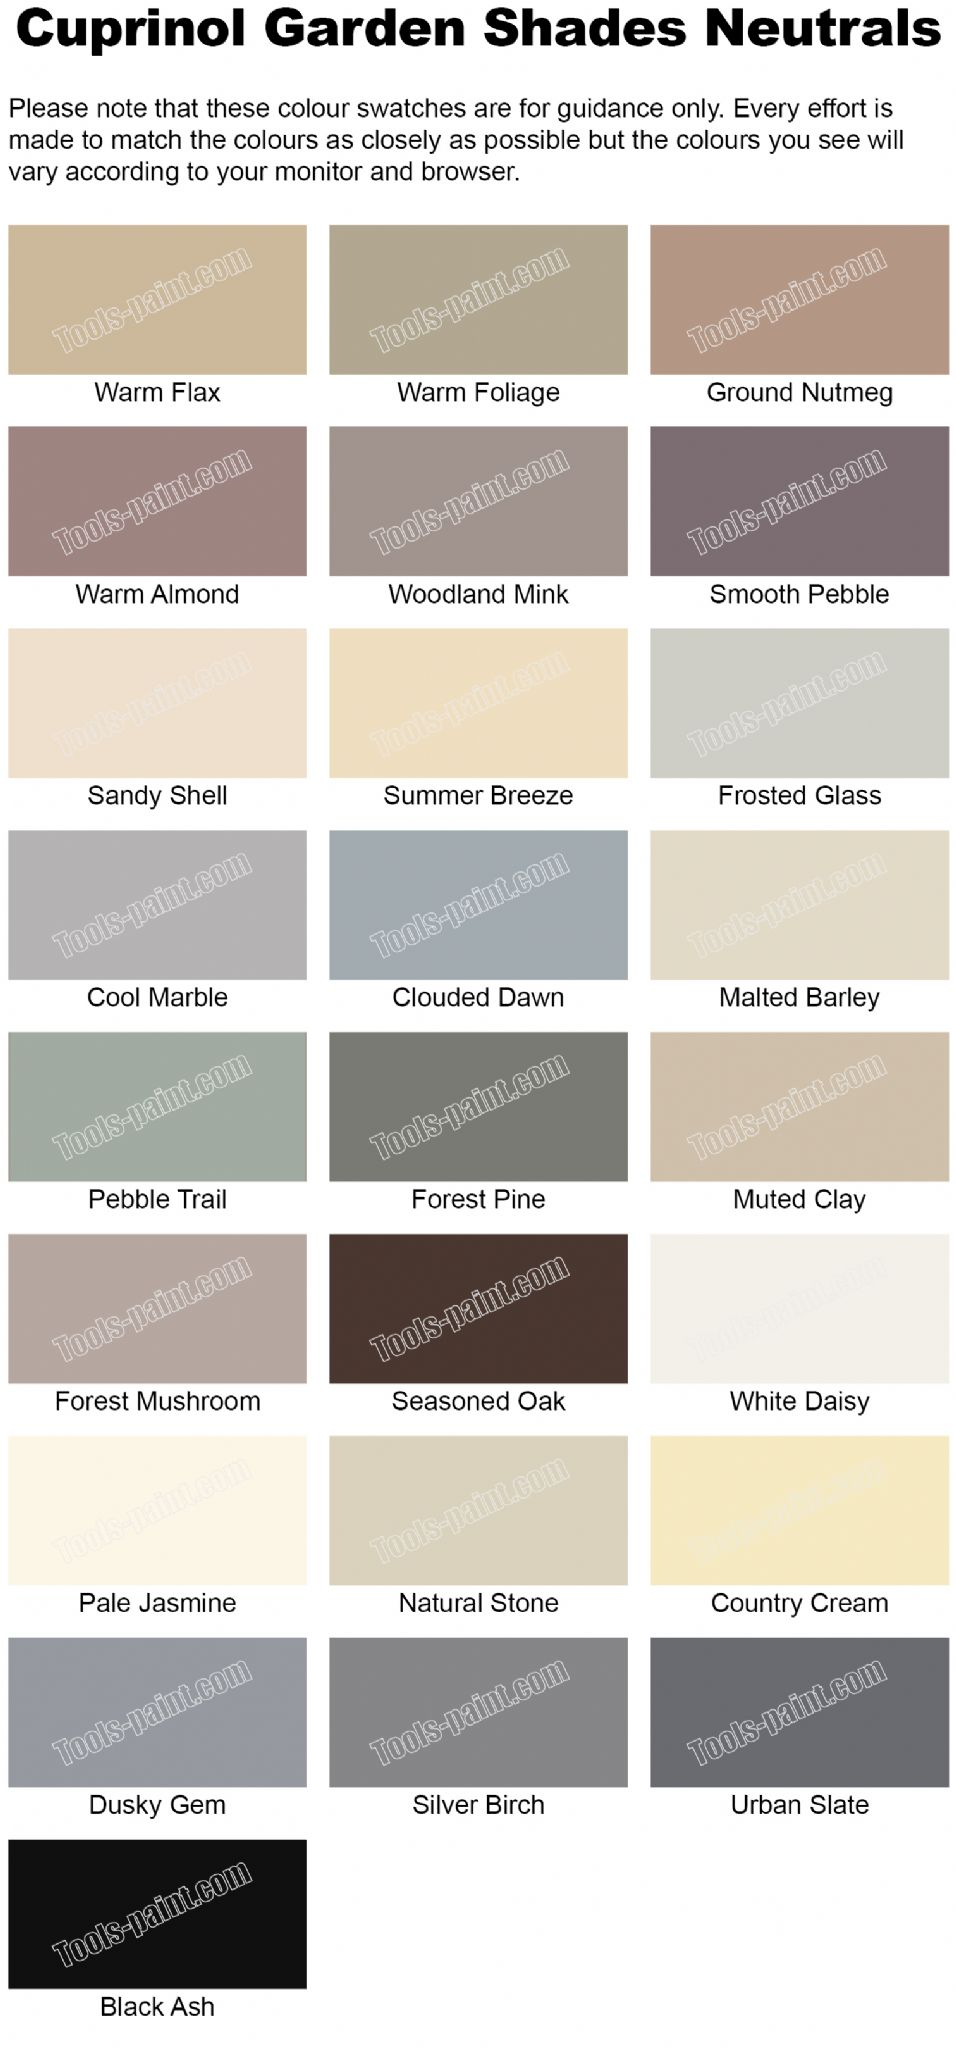 Fence Paint Colours Cuprinol Muted Clay